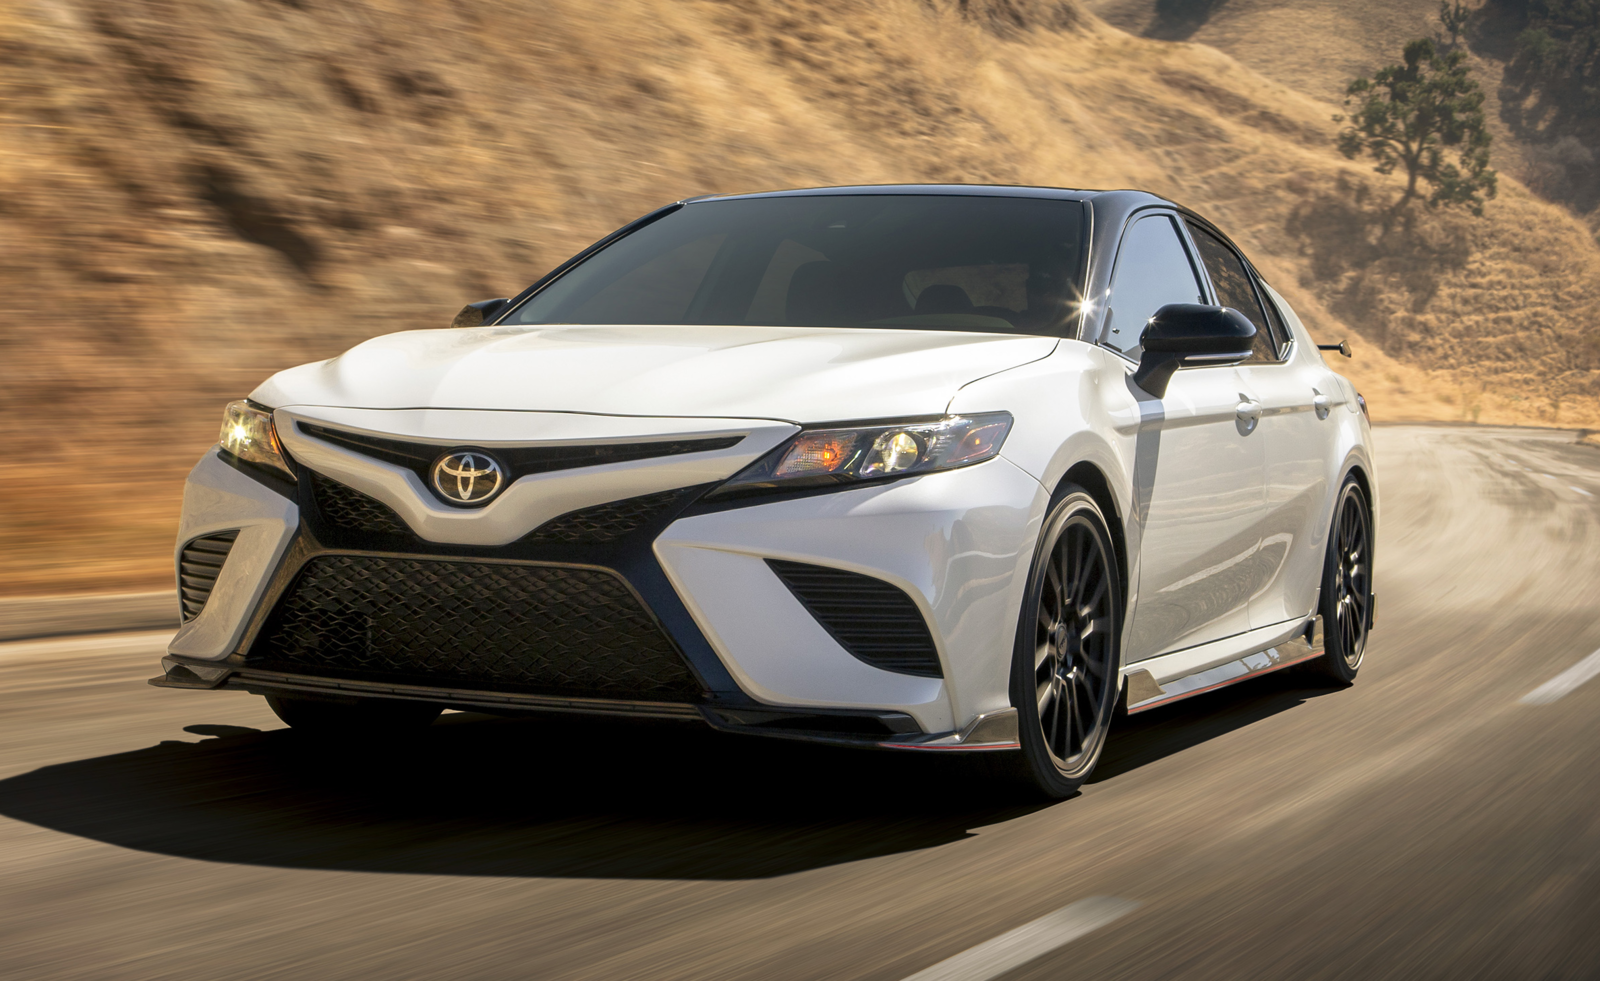 Toyota Camry - Overview - CarGurus